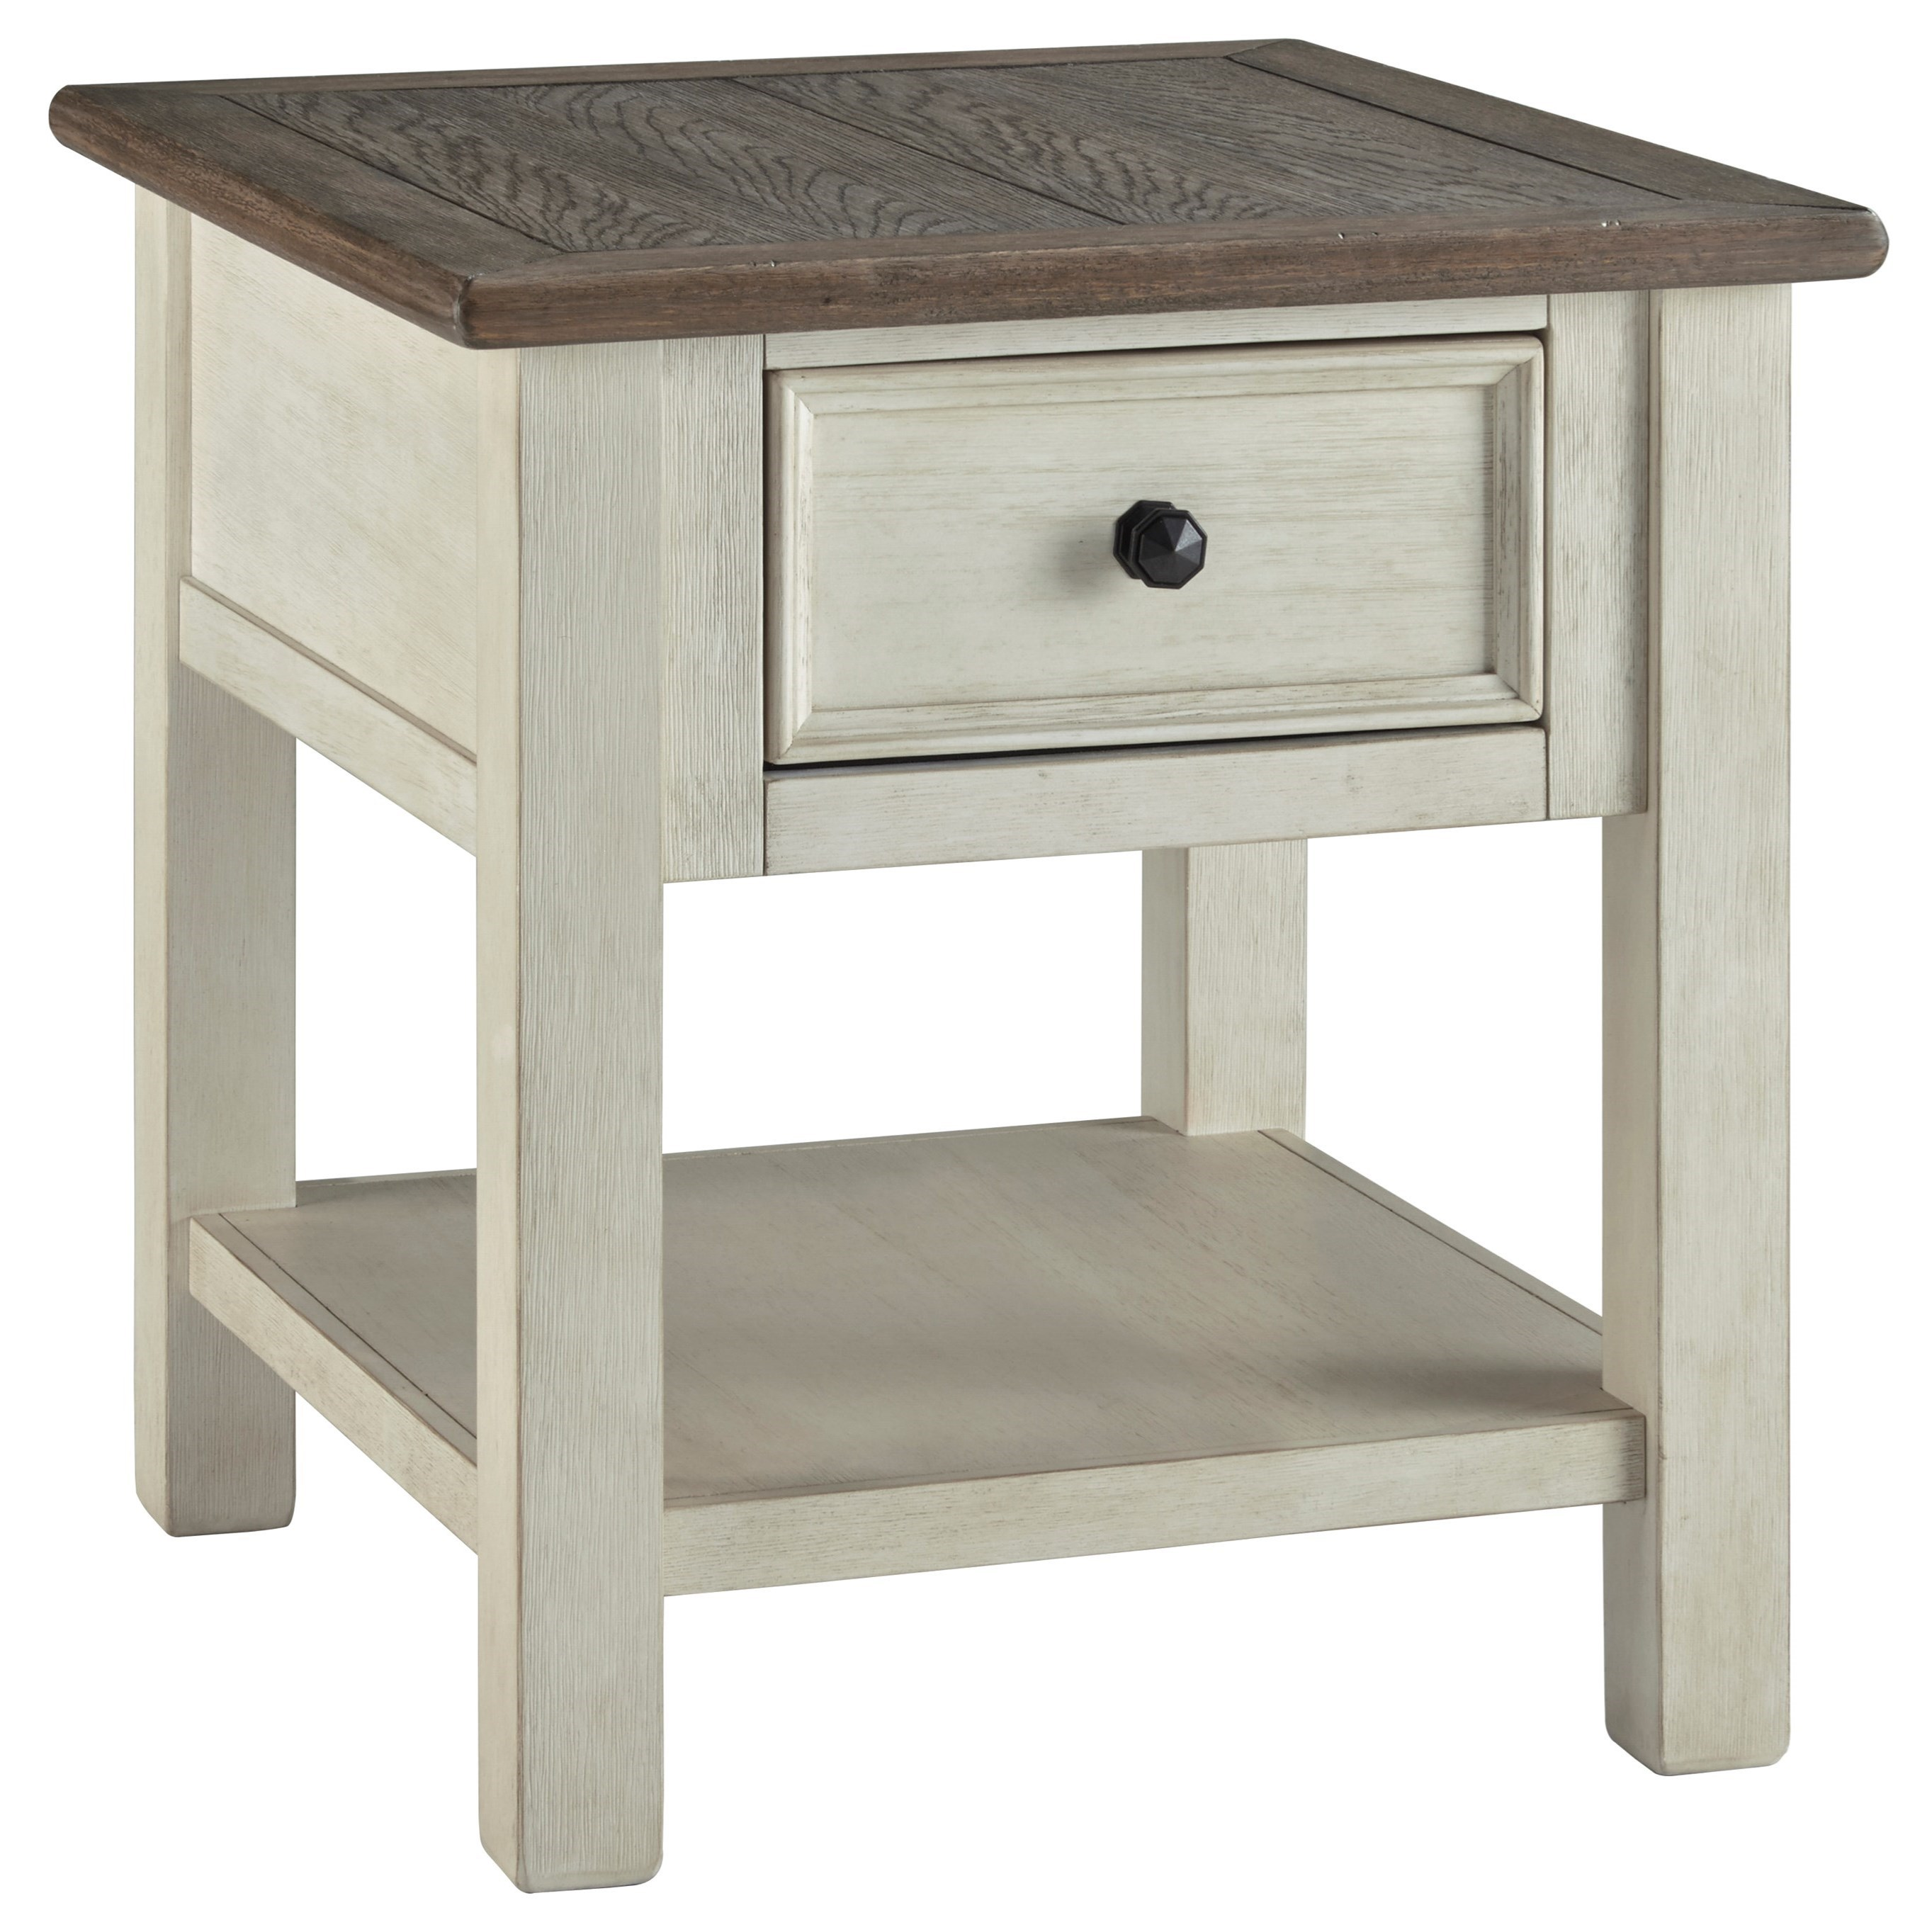 Tory End Table by Signature Design by Ashley at Crowley Furniture & Mattress